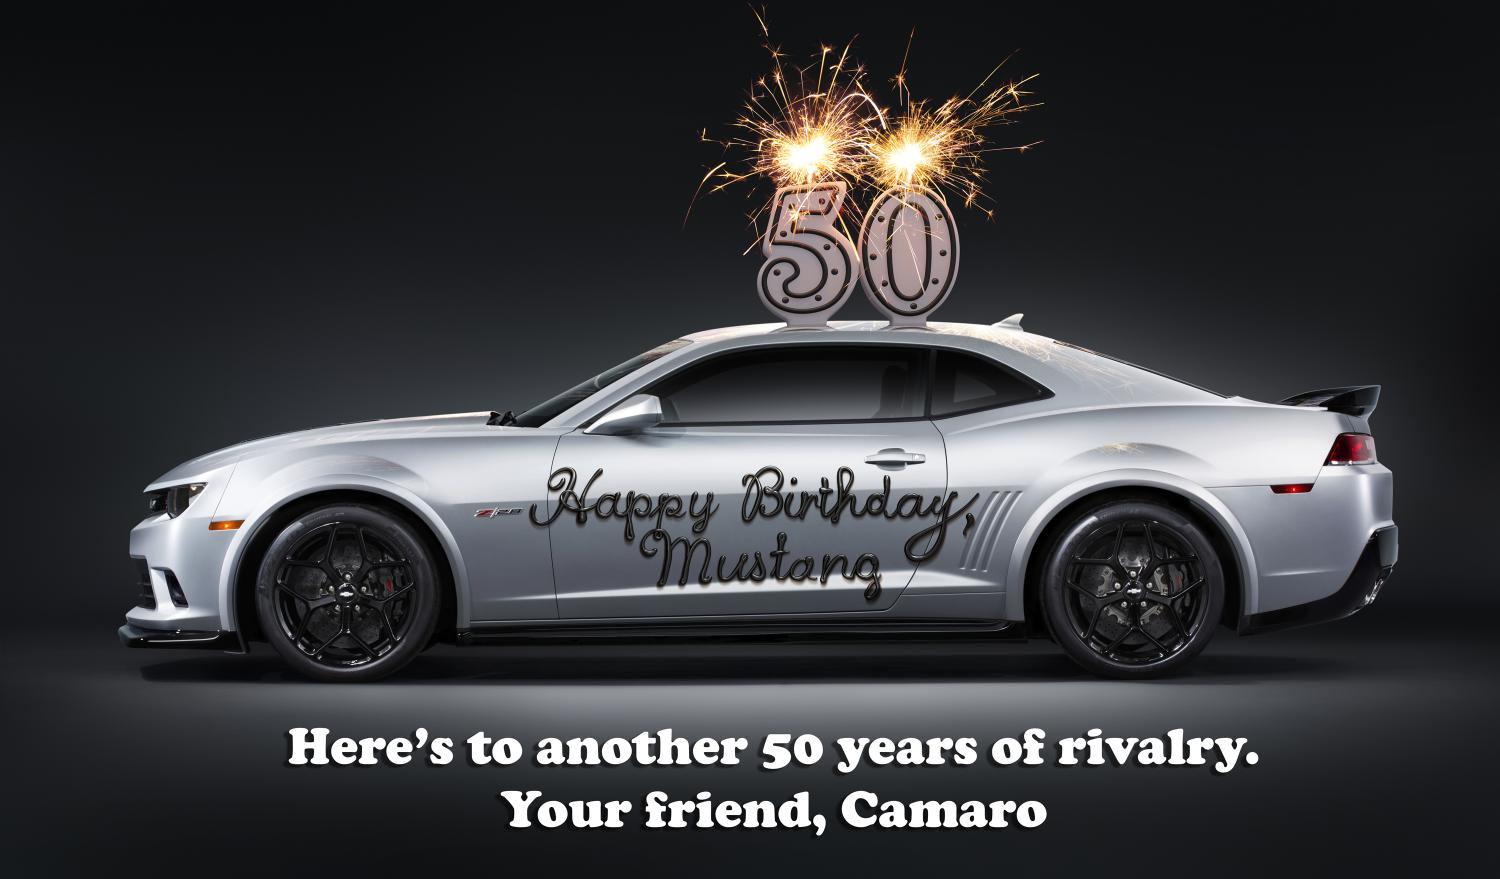 Camaro Sends A Cheeky 50th Birthday Card To The Mustang